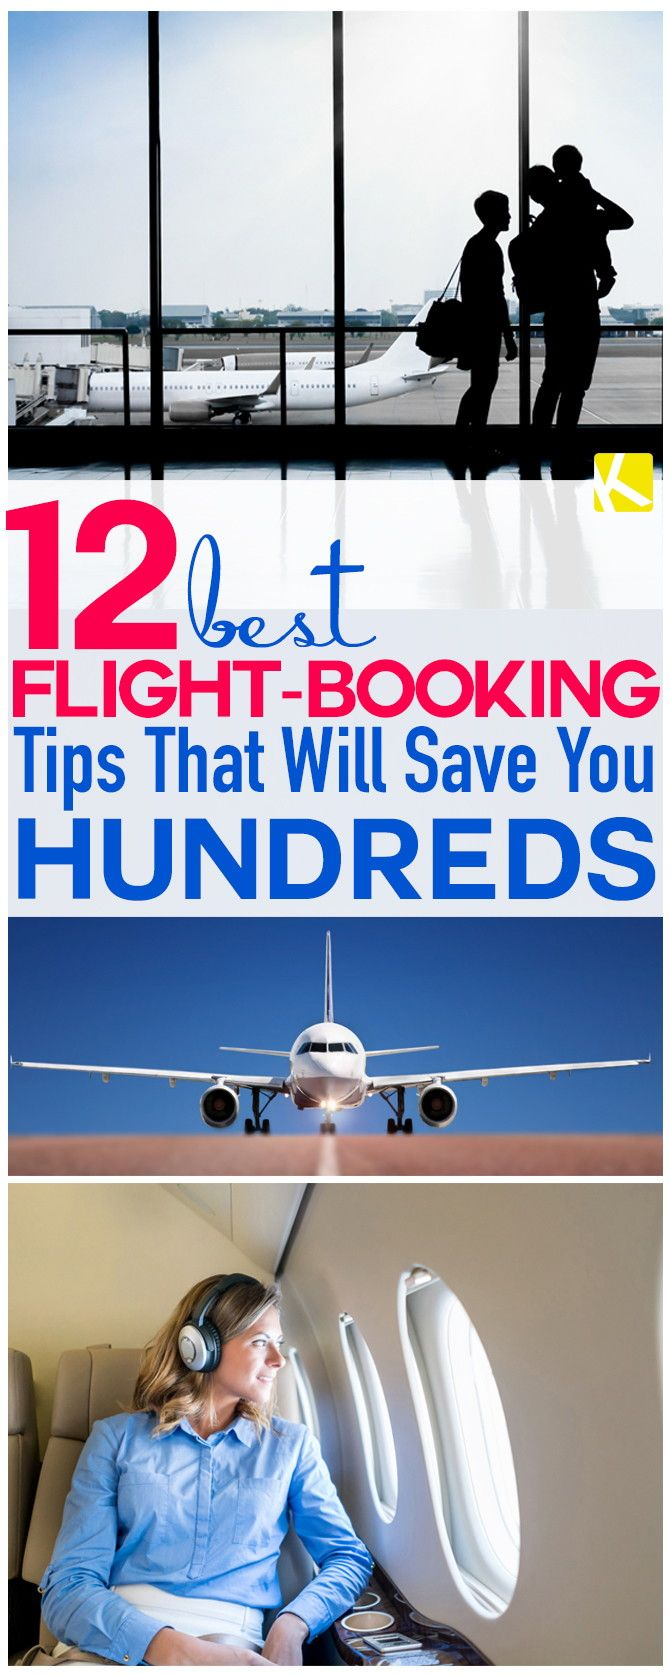 12 Little-Known Ways to Save on Your Next Flight